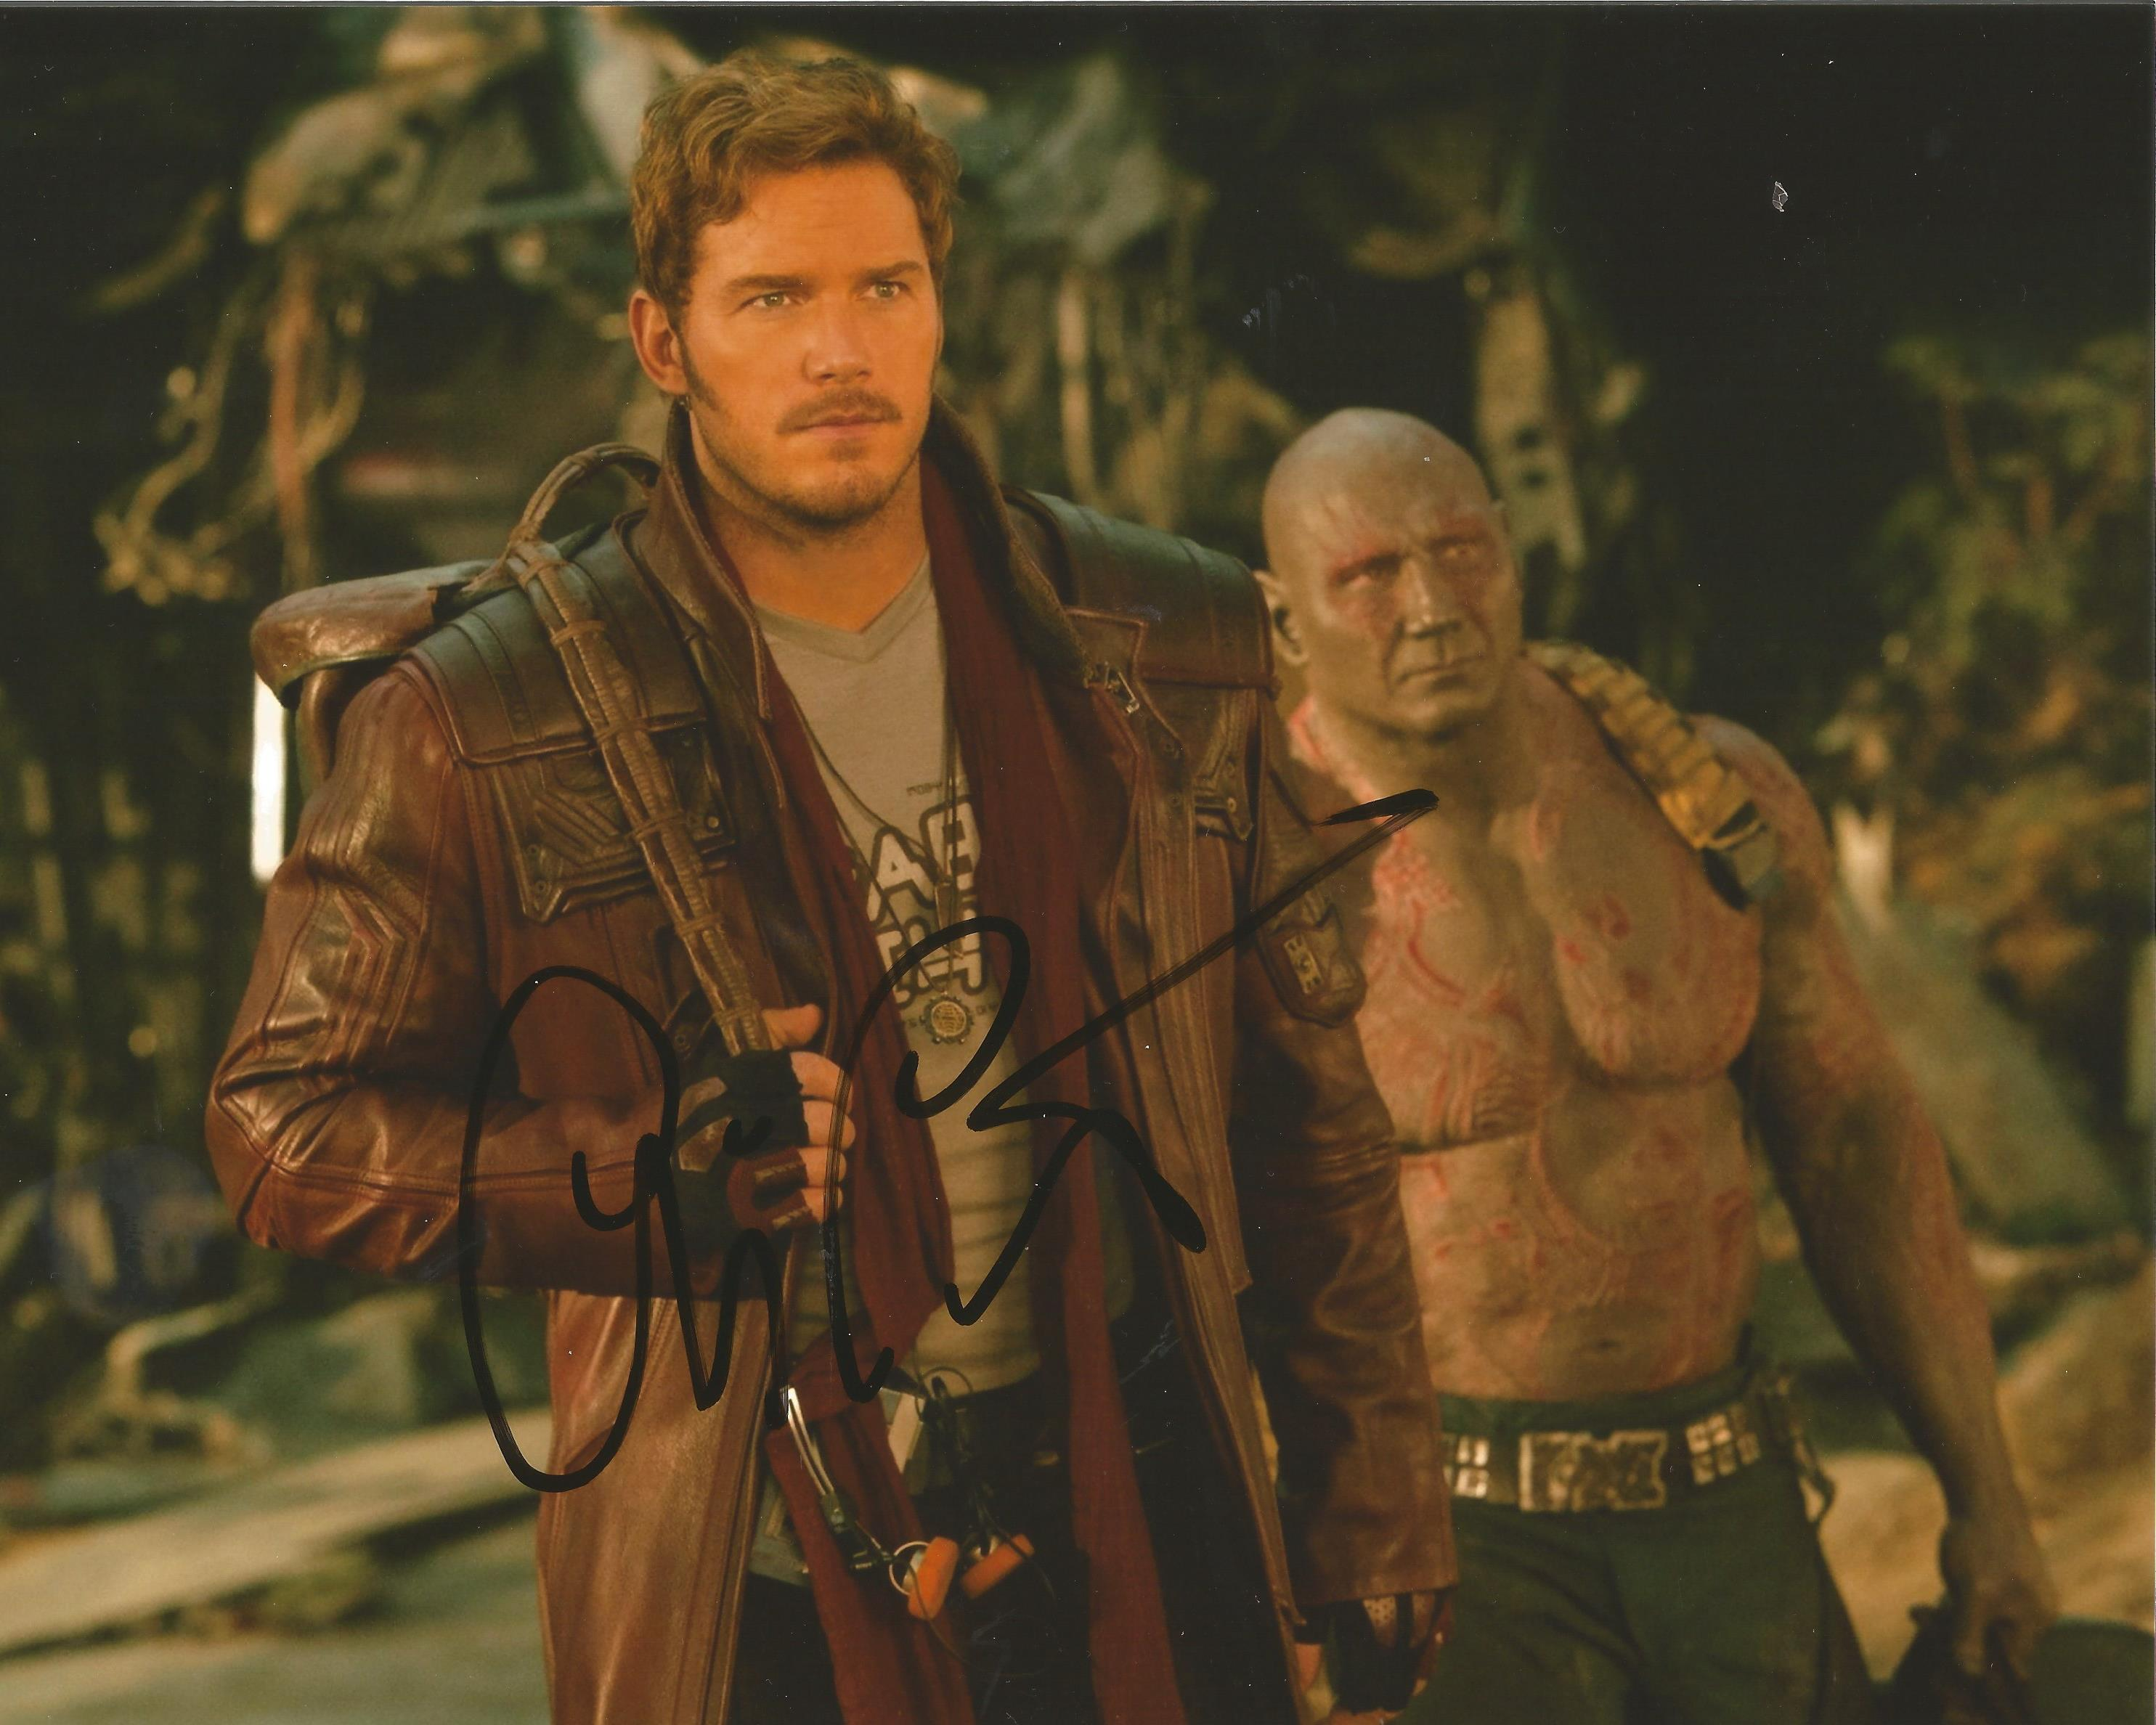 Chris Pratt signed 10x8 colour photograph taken during his time playing Star Lord during Marvel film